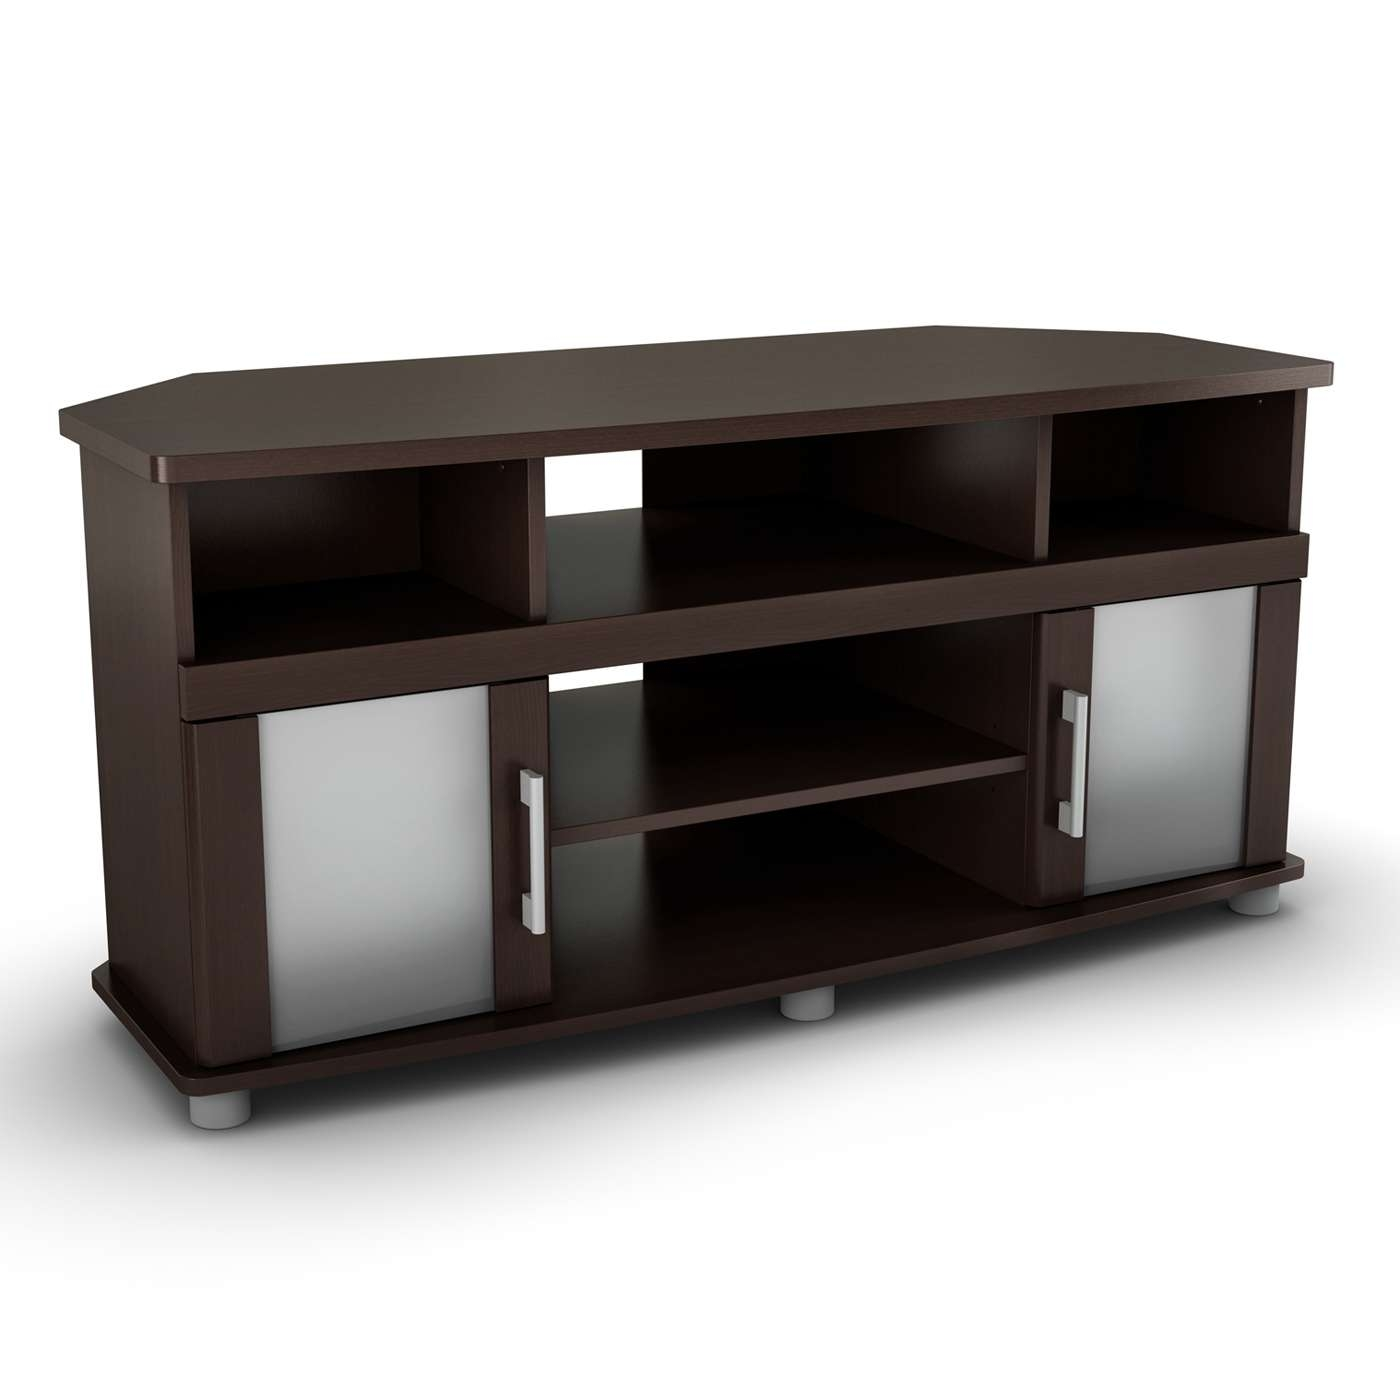 Tv Stands – Corner, Fireplace & More | Lowe's Canada Inside Tv Stands With Rounded Corners (View 15 of 15)